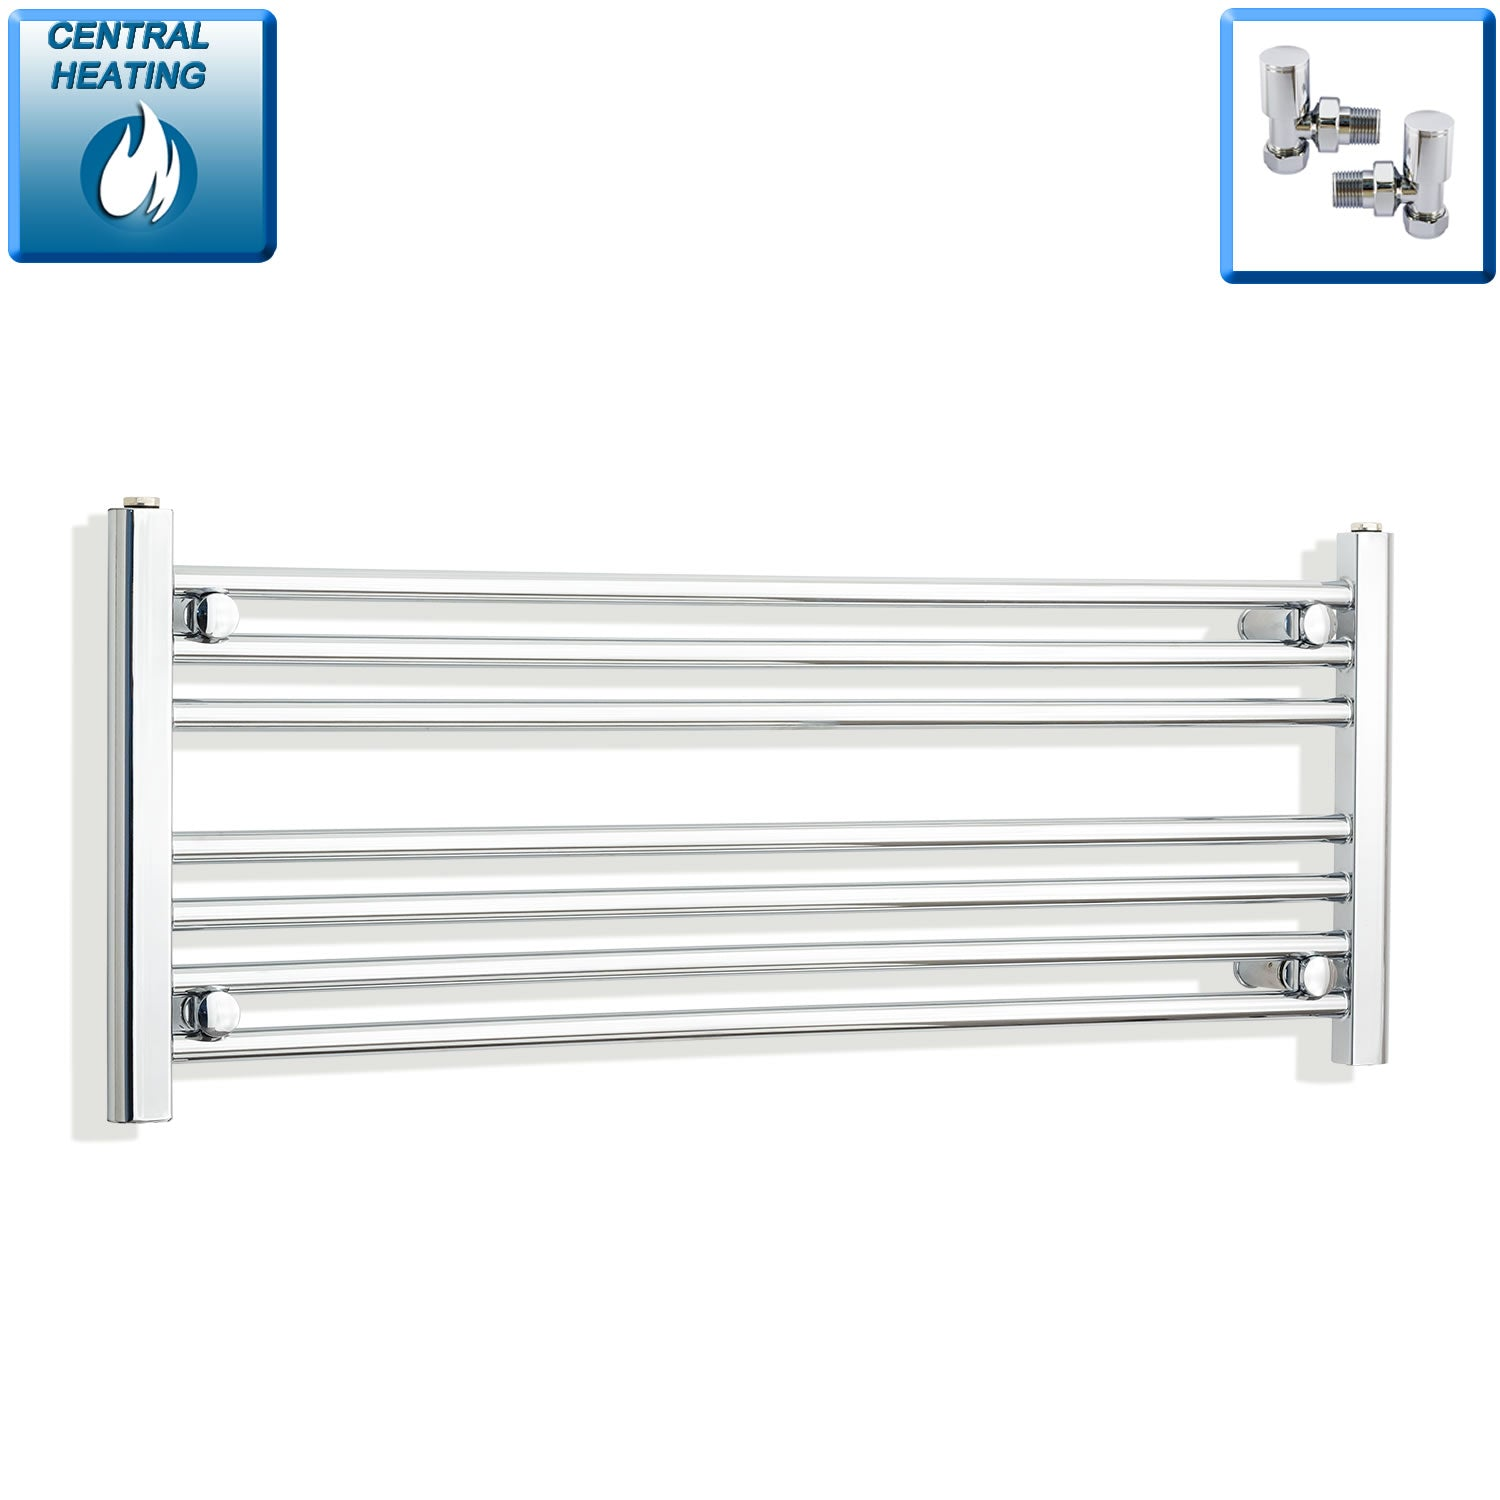 1100mm Wide 400mm High Chrome Towel Rail Radiator With Angled Valve